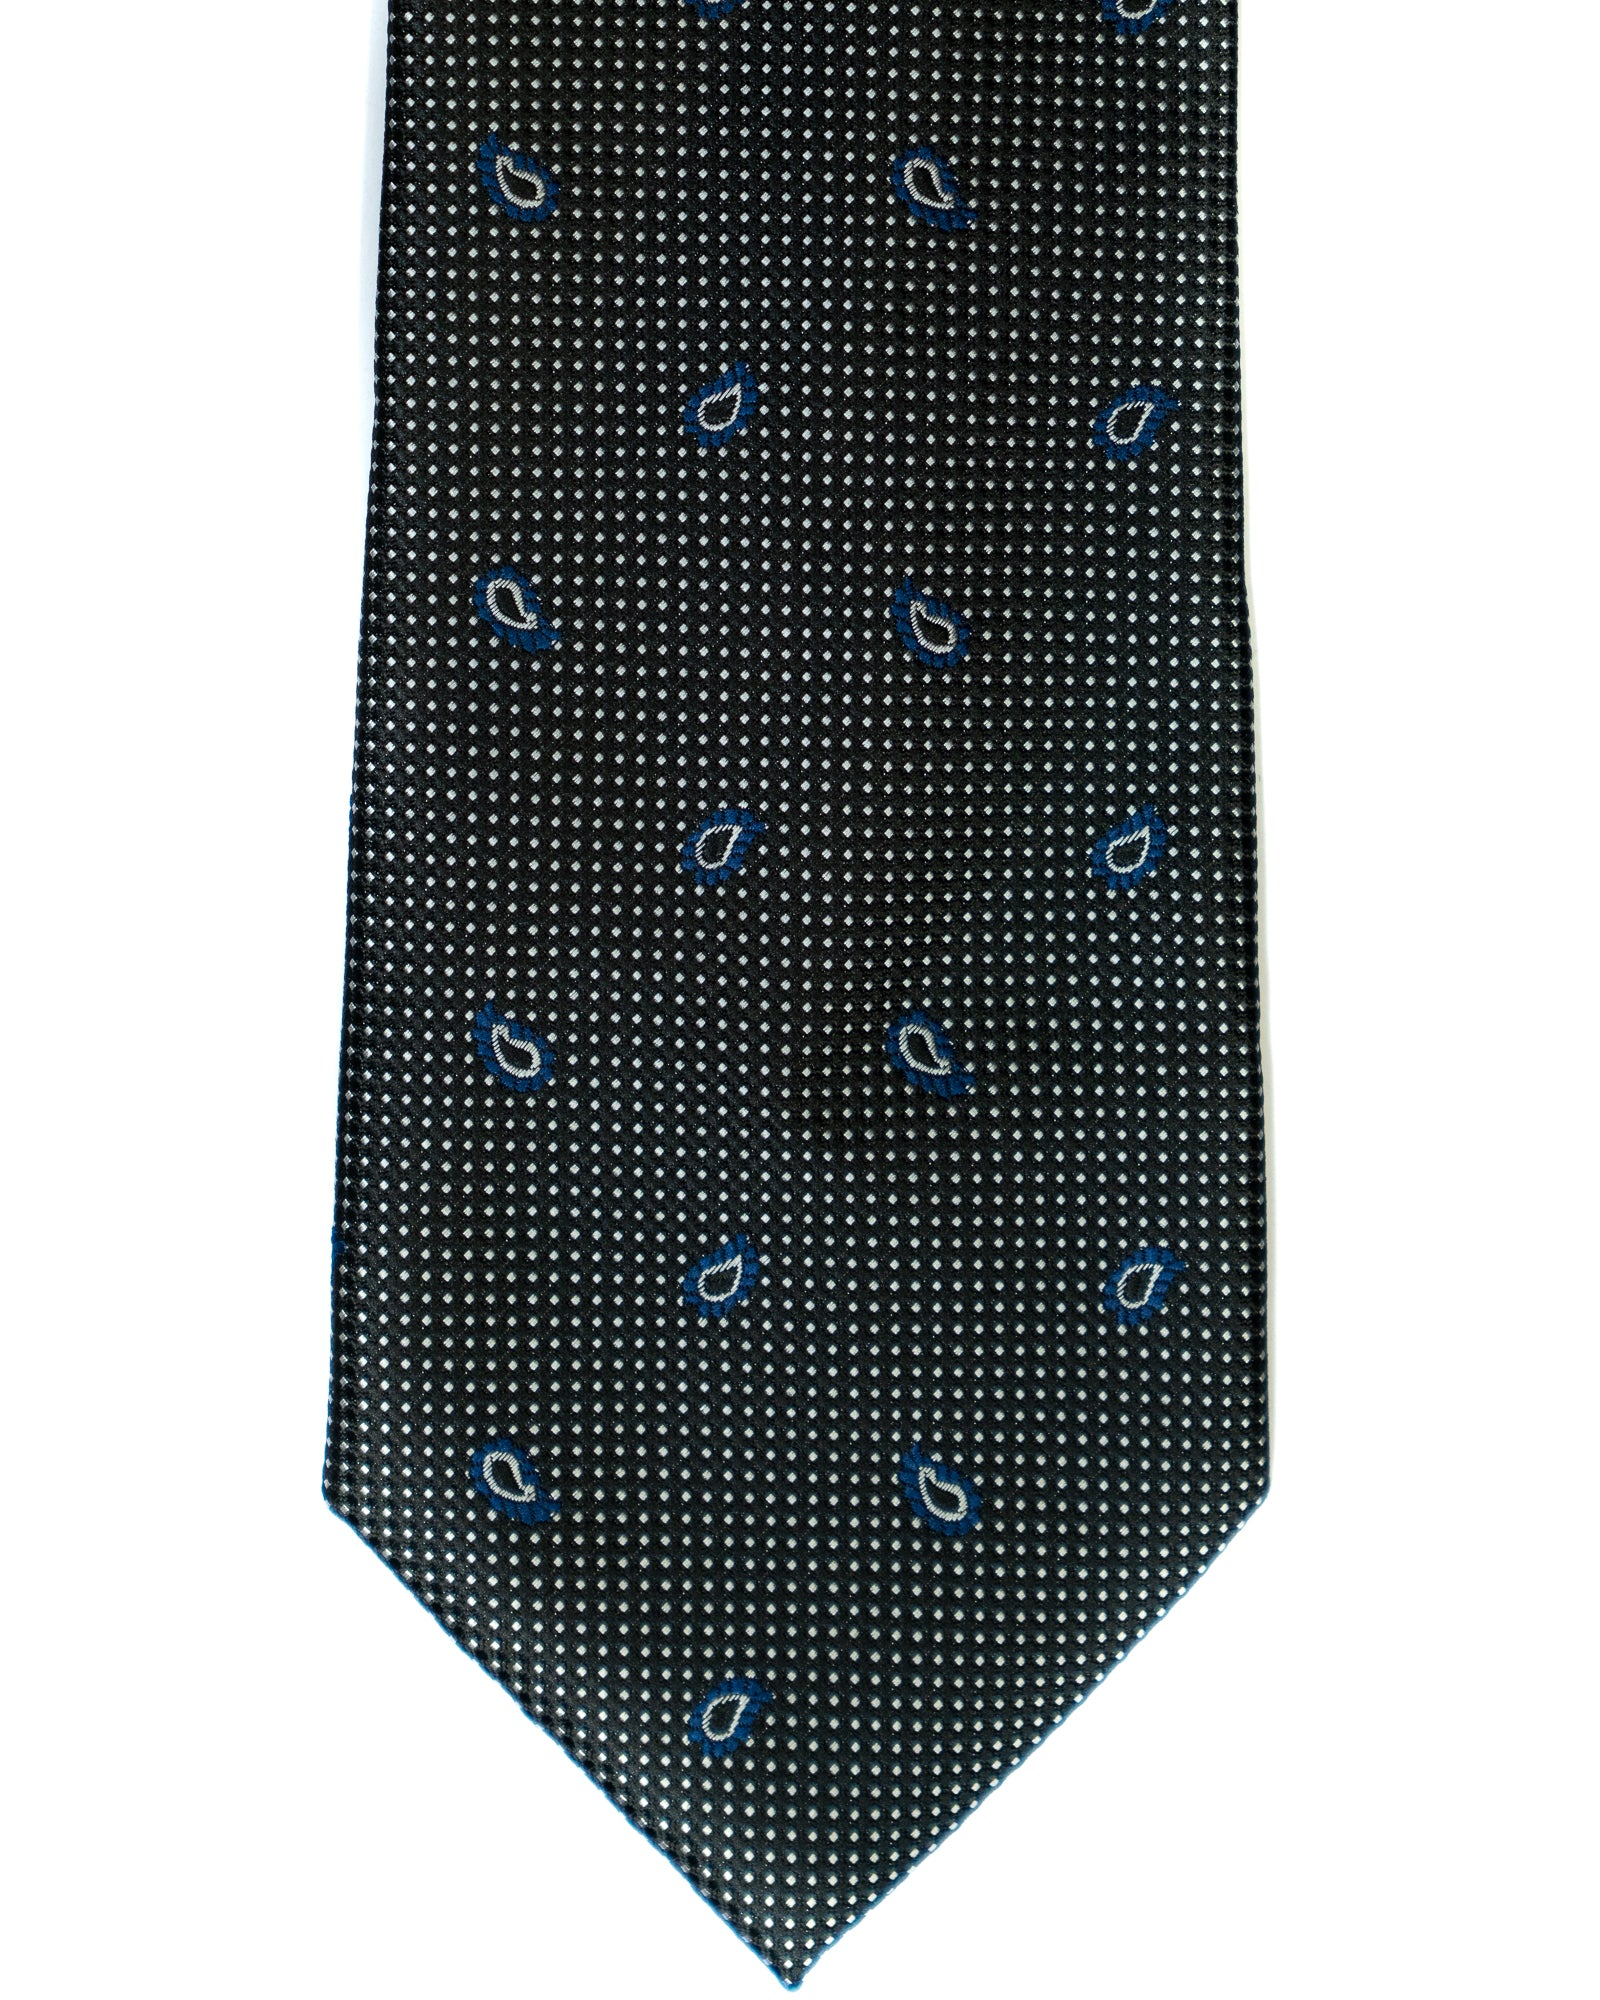 Gianfranco Foulard Tie in Black with Grey - Rainwater's Men's Clothing and Tuxedo Rental